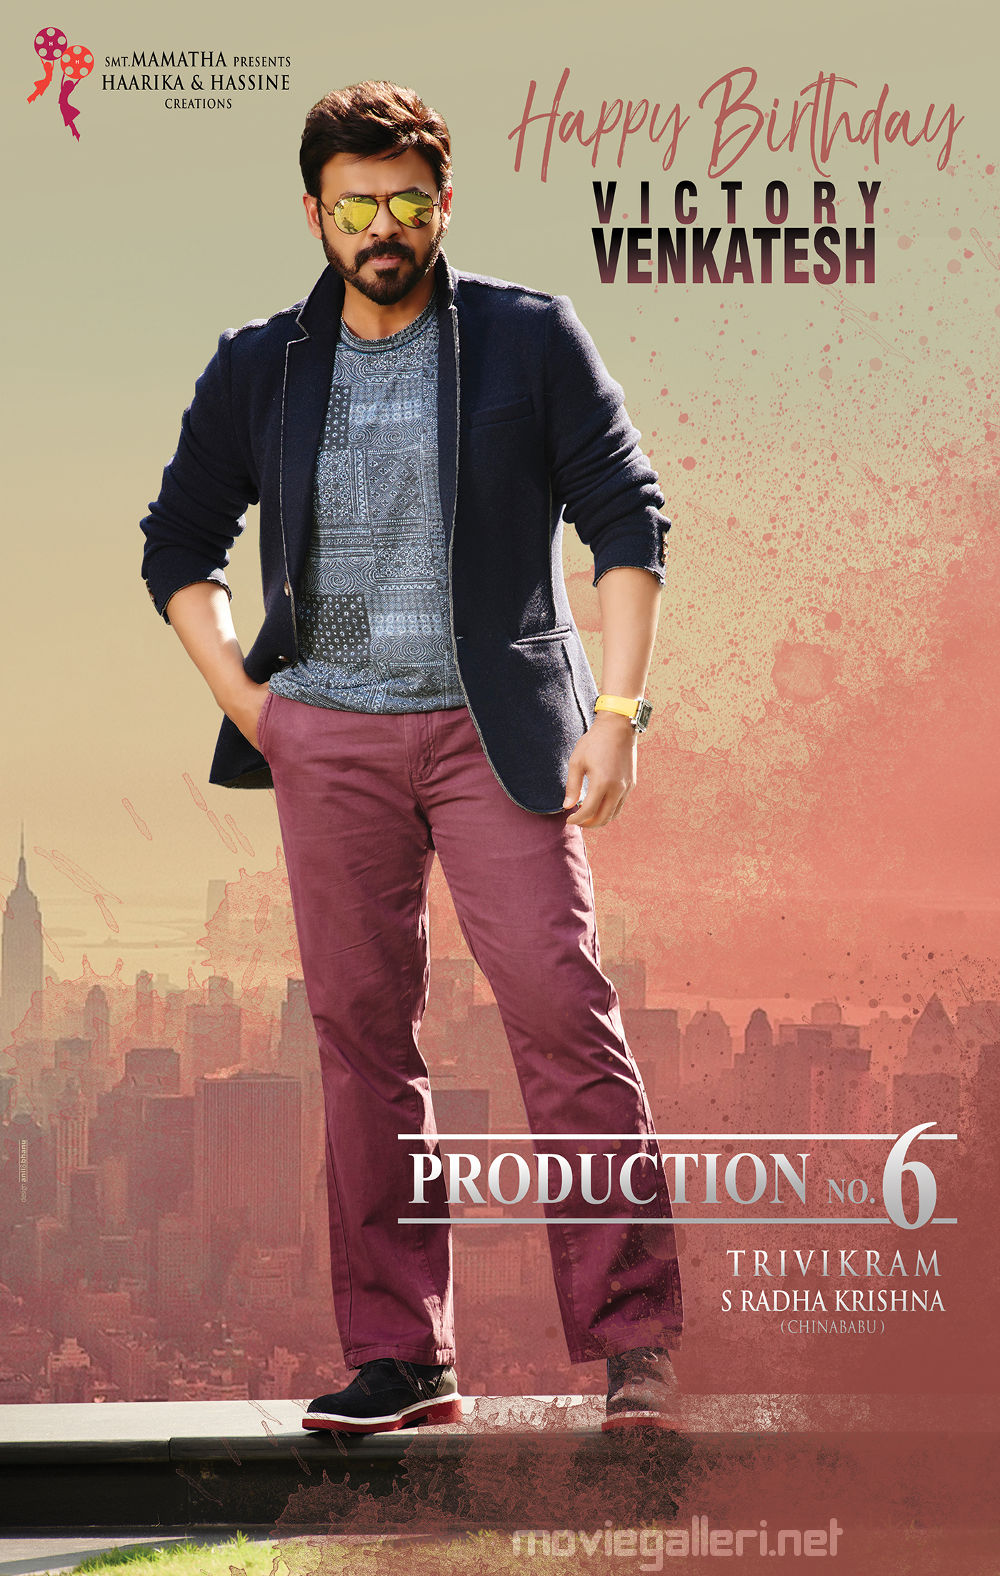 Trivikram Haarika Hassine Creations Birthday Wishes To Venkatesh Posters